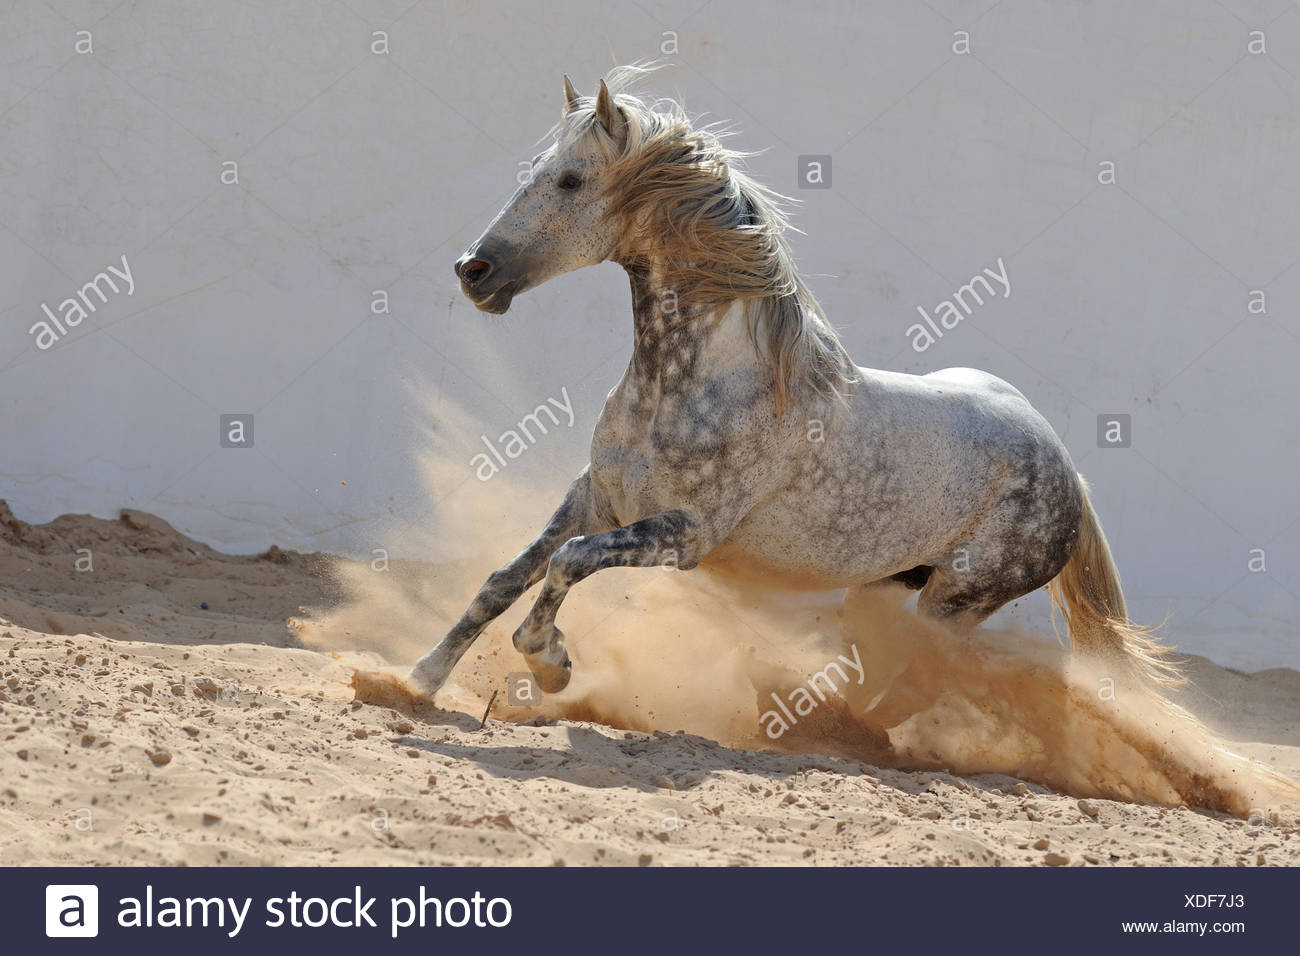 Barb Horse. Dappled gray stallion galloping in a paddock. Tunesia - Stock Image